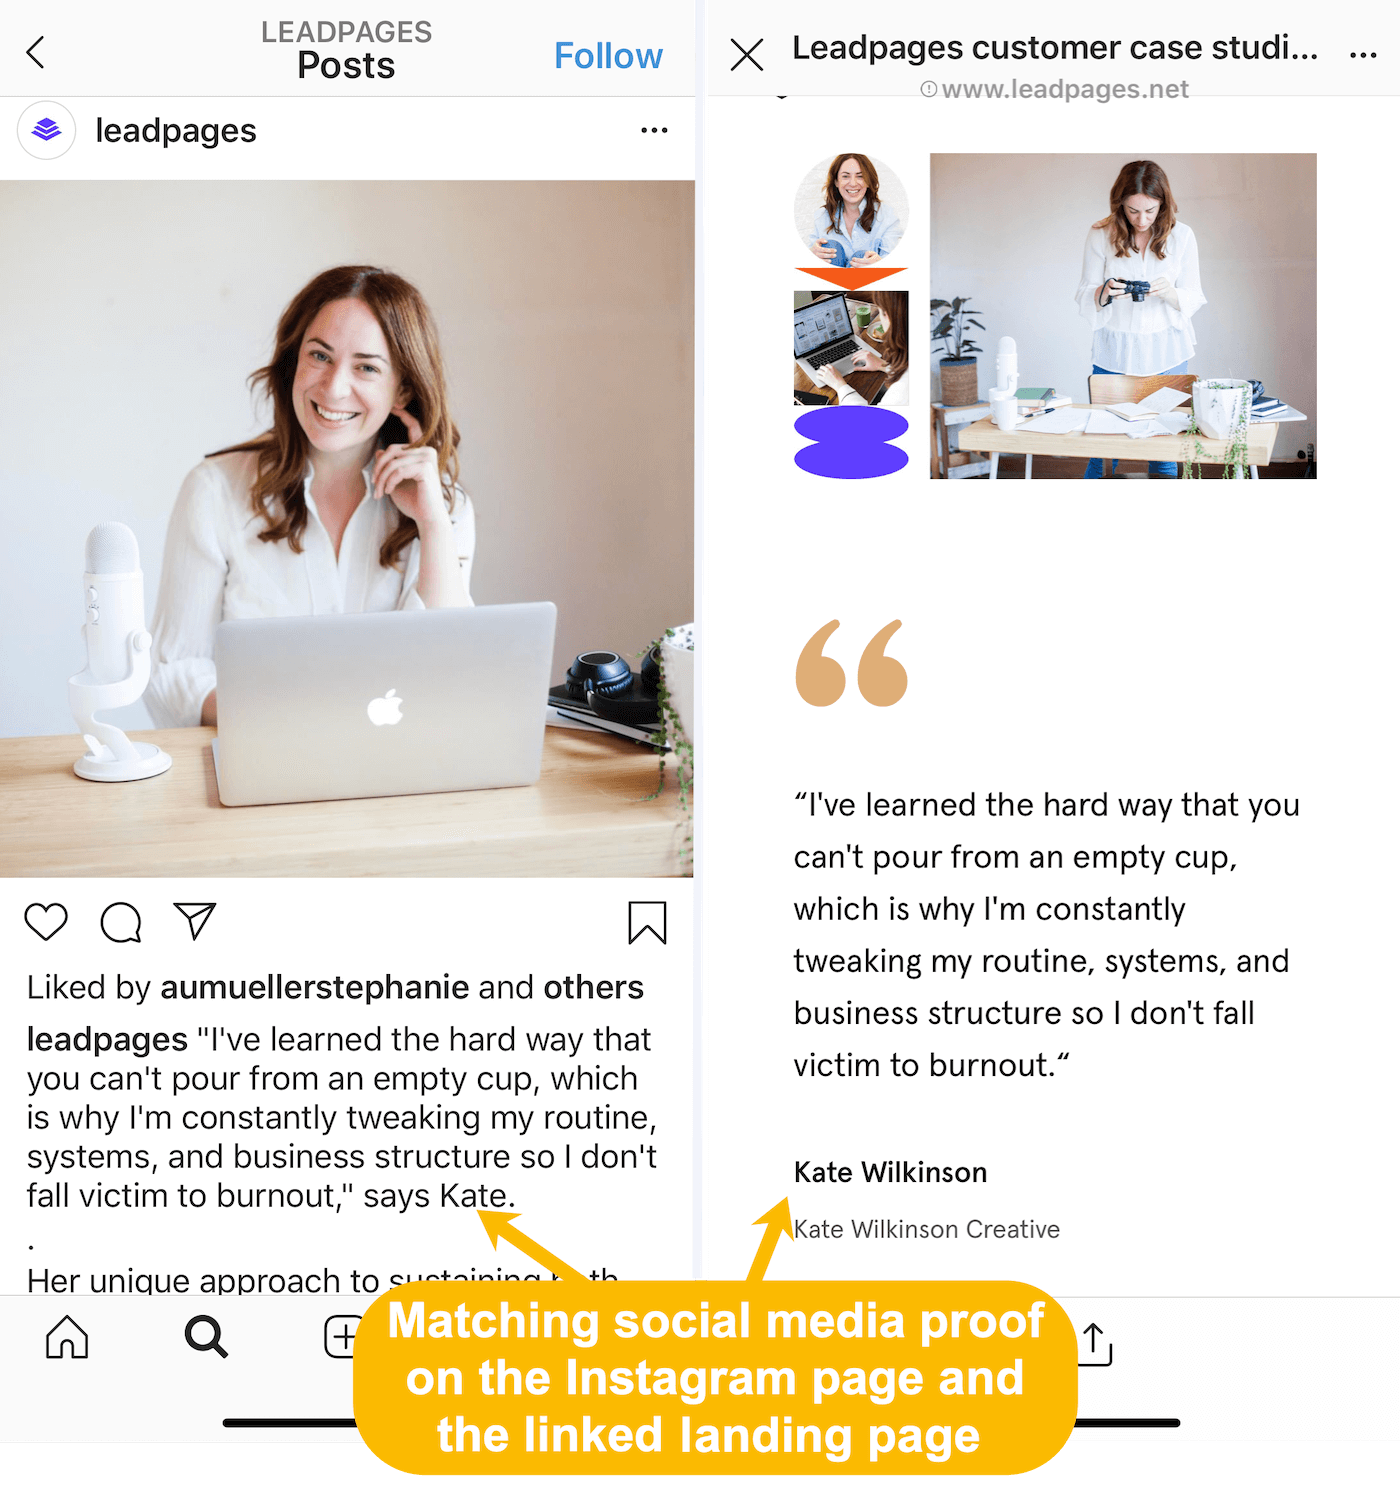 instagram post and landing page congruency 700@2x 3